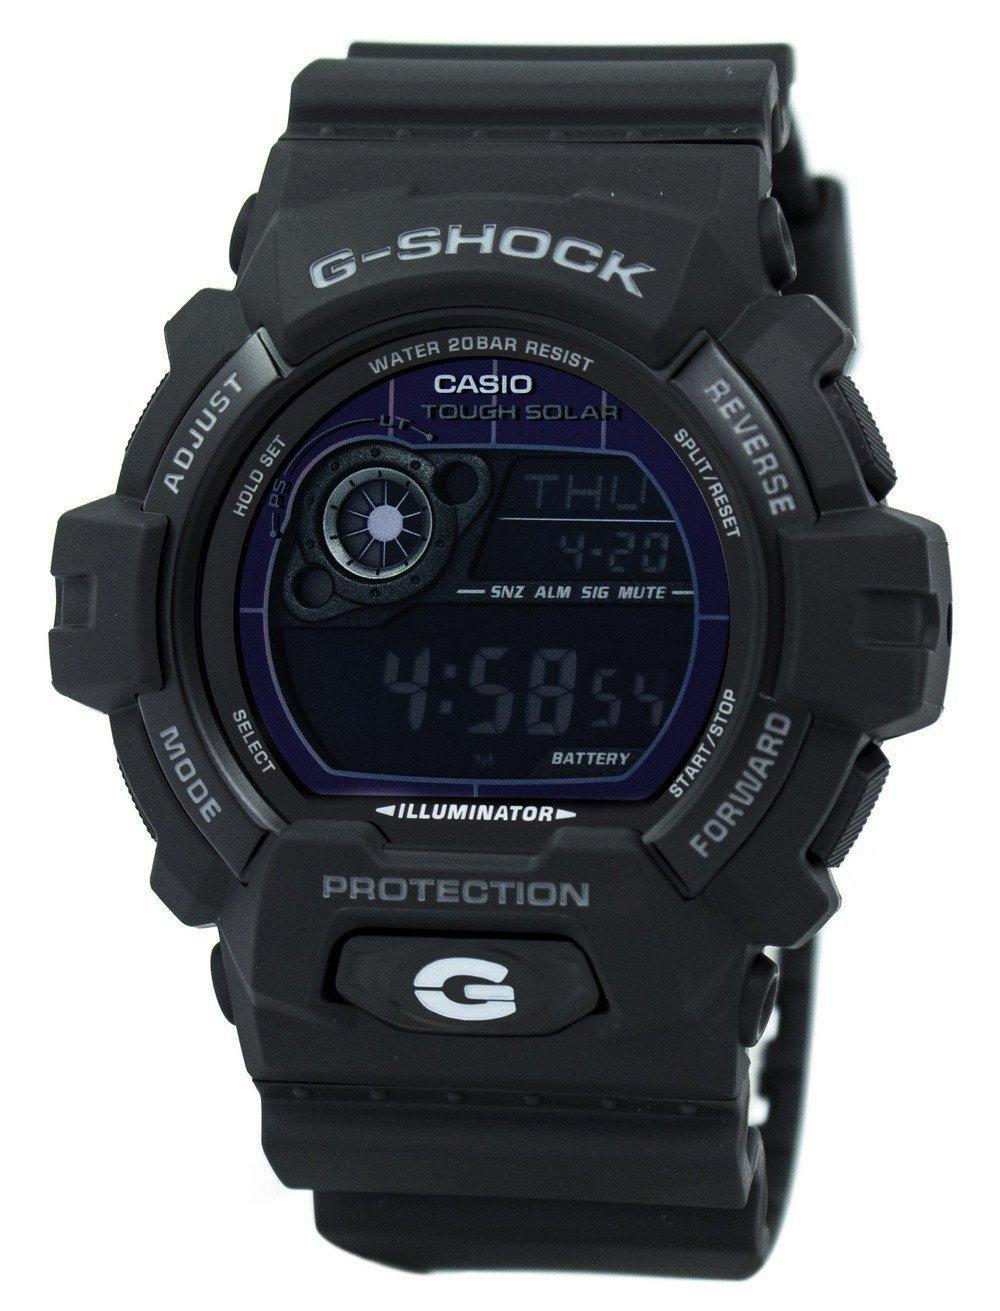 Casio G Shock Watch: 2 customer reviews and 575 listings